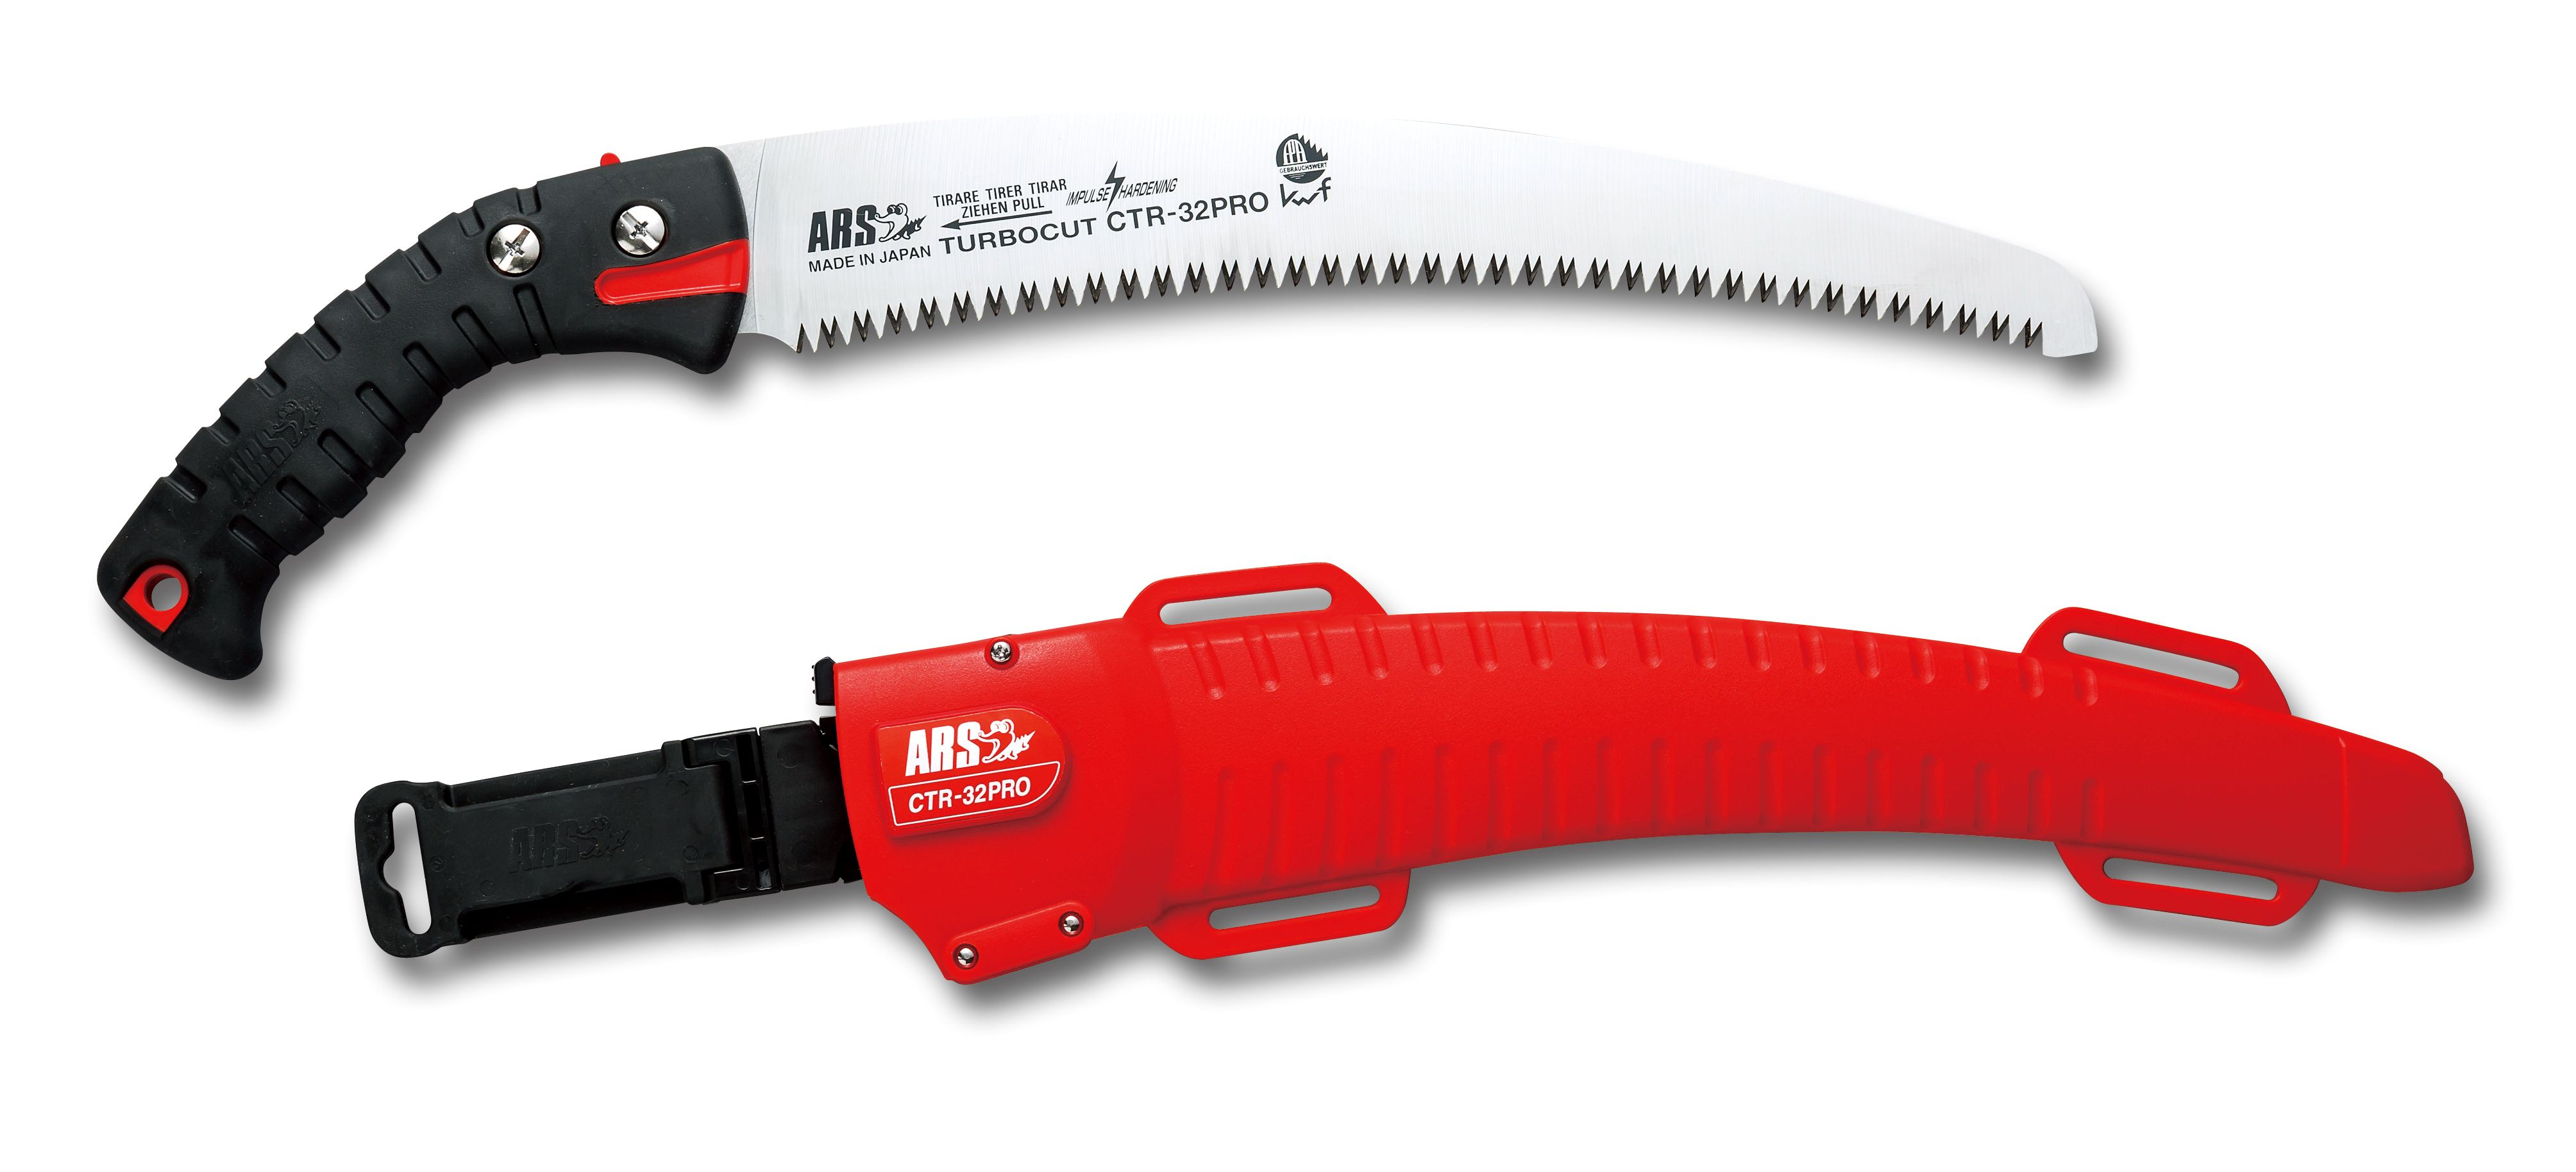 ARS-CTR-32Pro Professional 'TurboCut' Pruning Saw